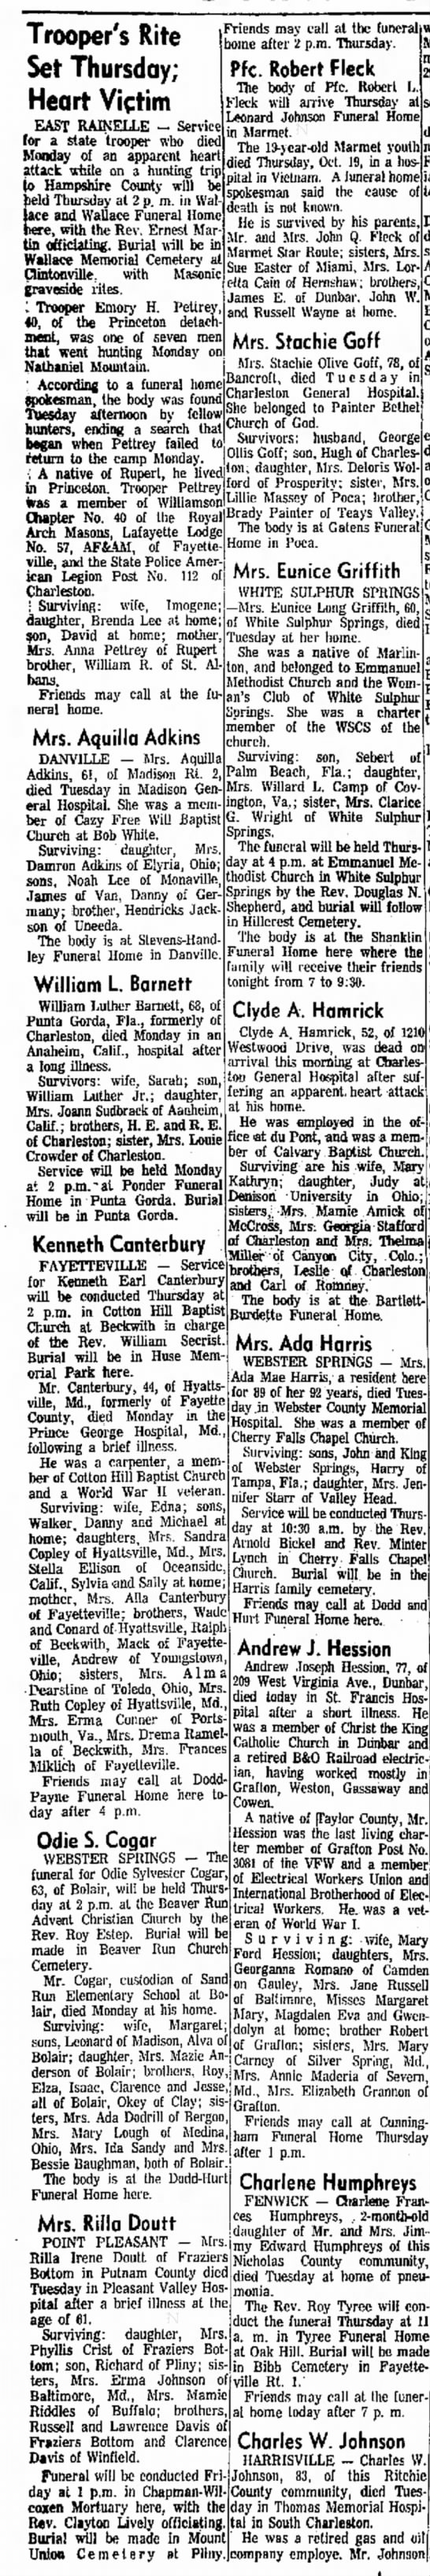 Obituary of Mrs  Rilla Davis Doutt from the Charleston (WV